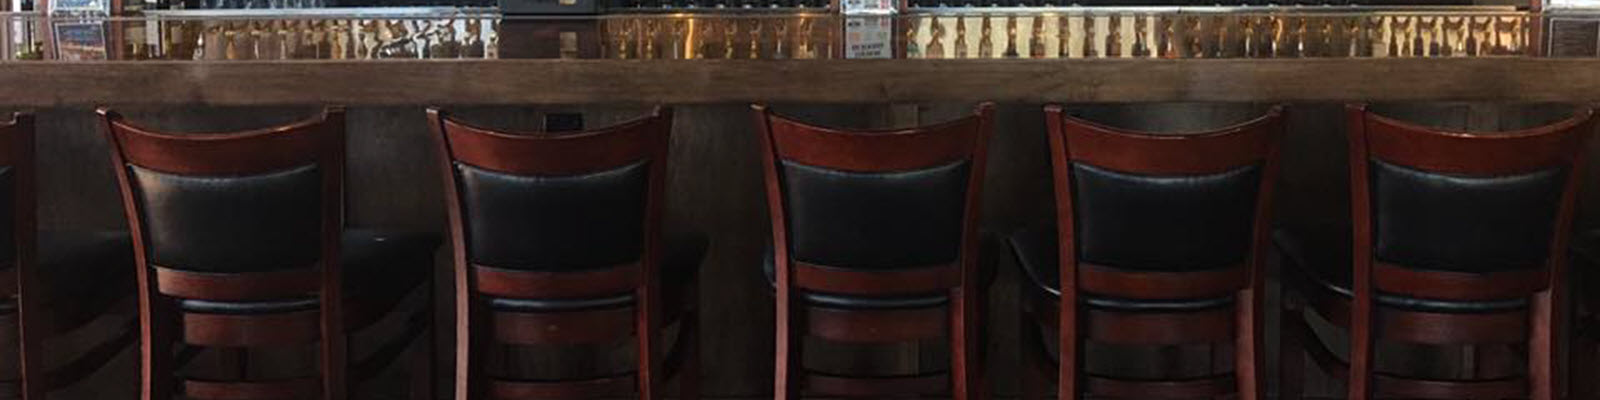 Upscale Beer In Vacaville Seeks The Help Of Leading Commercial Grade  Furniture Manufacturer With Its Seating Layout Arrangements.